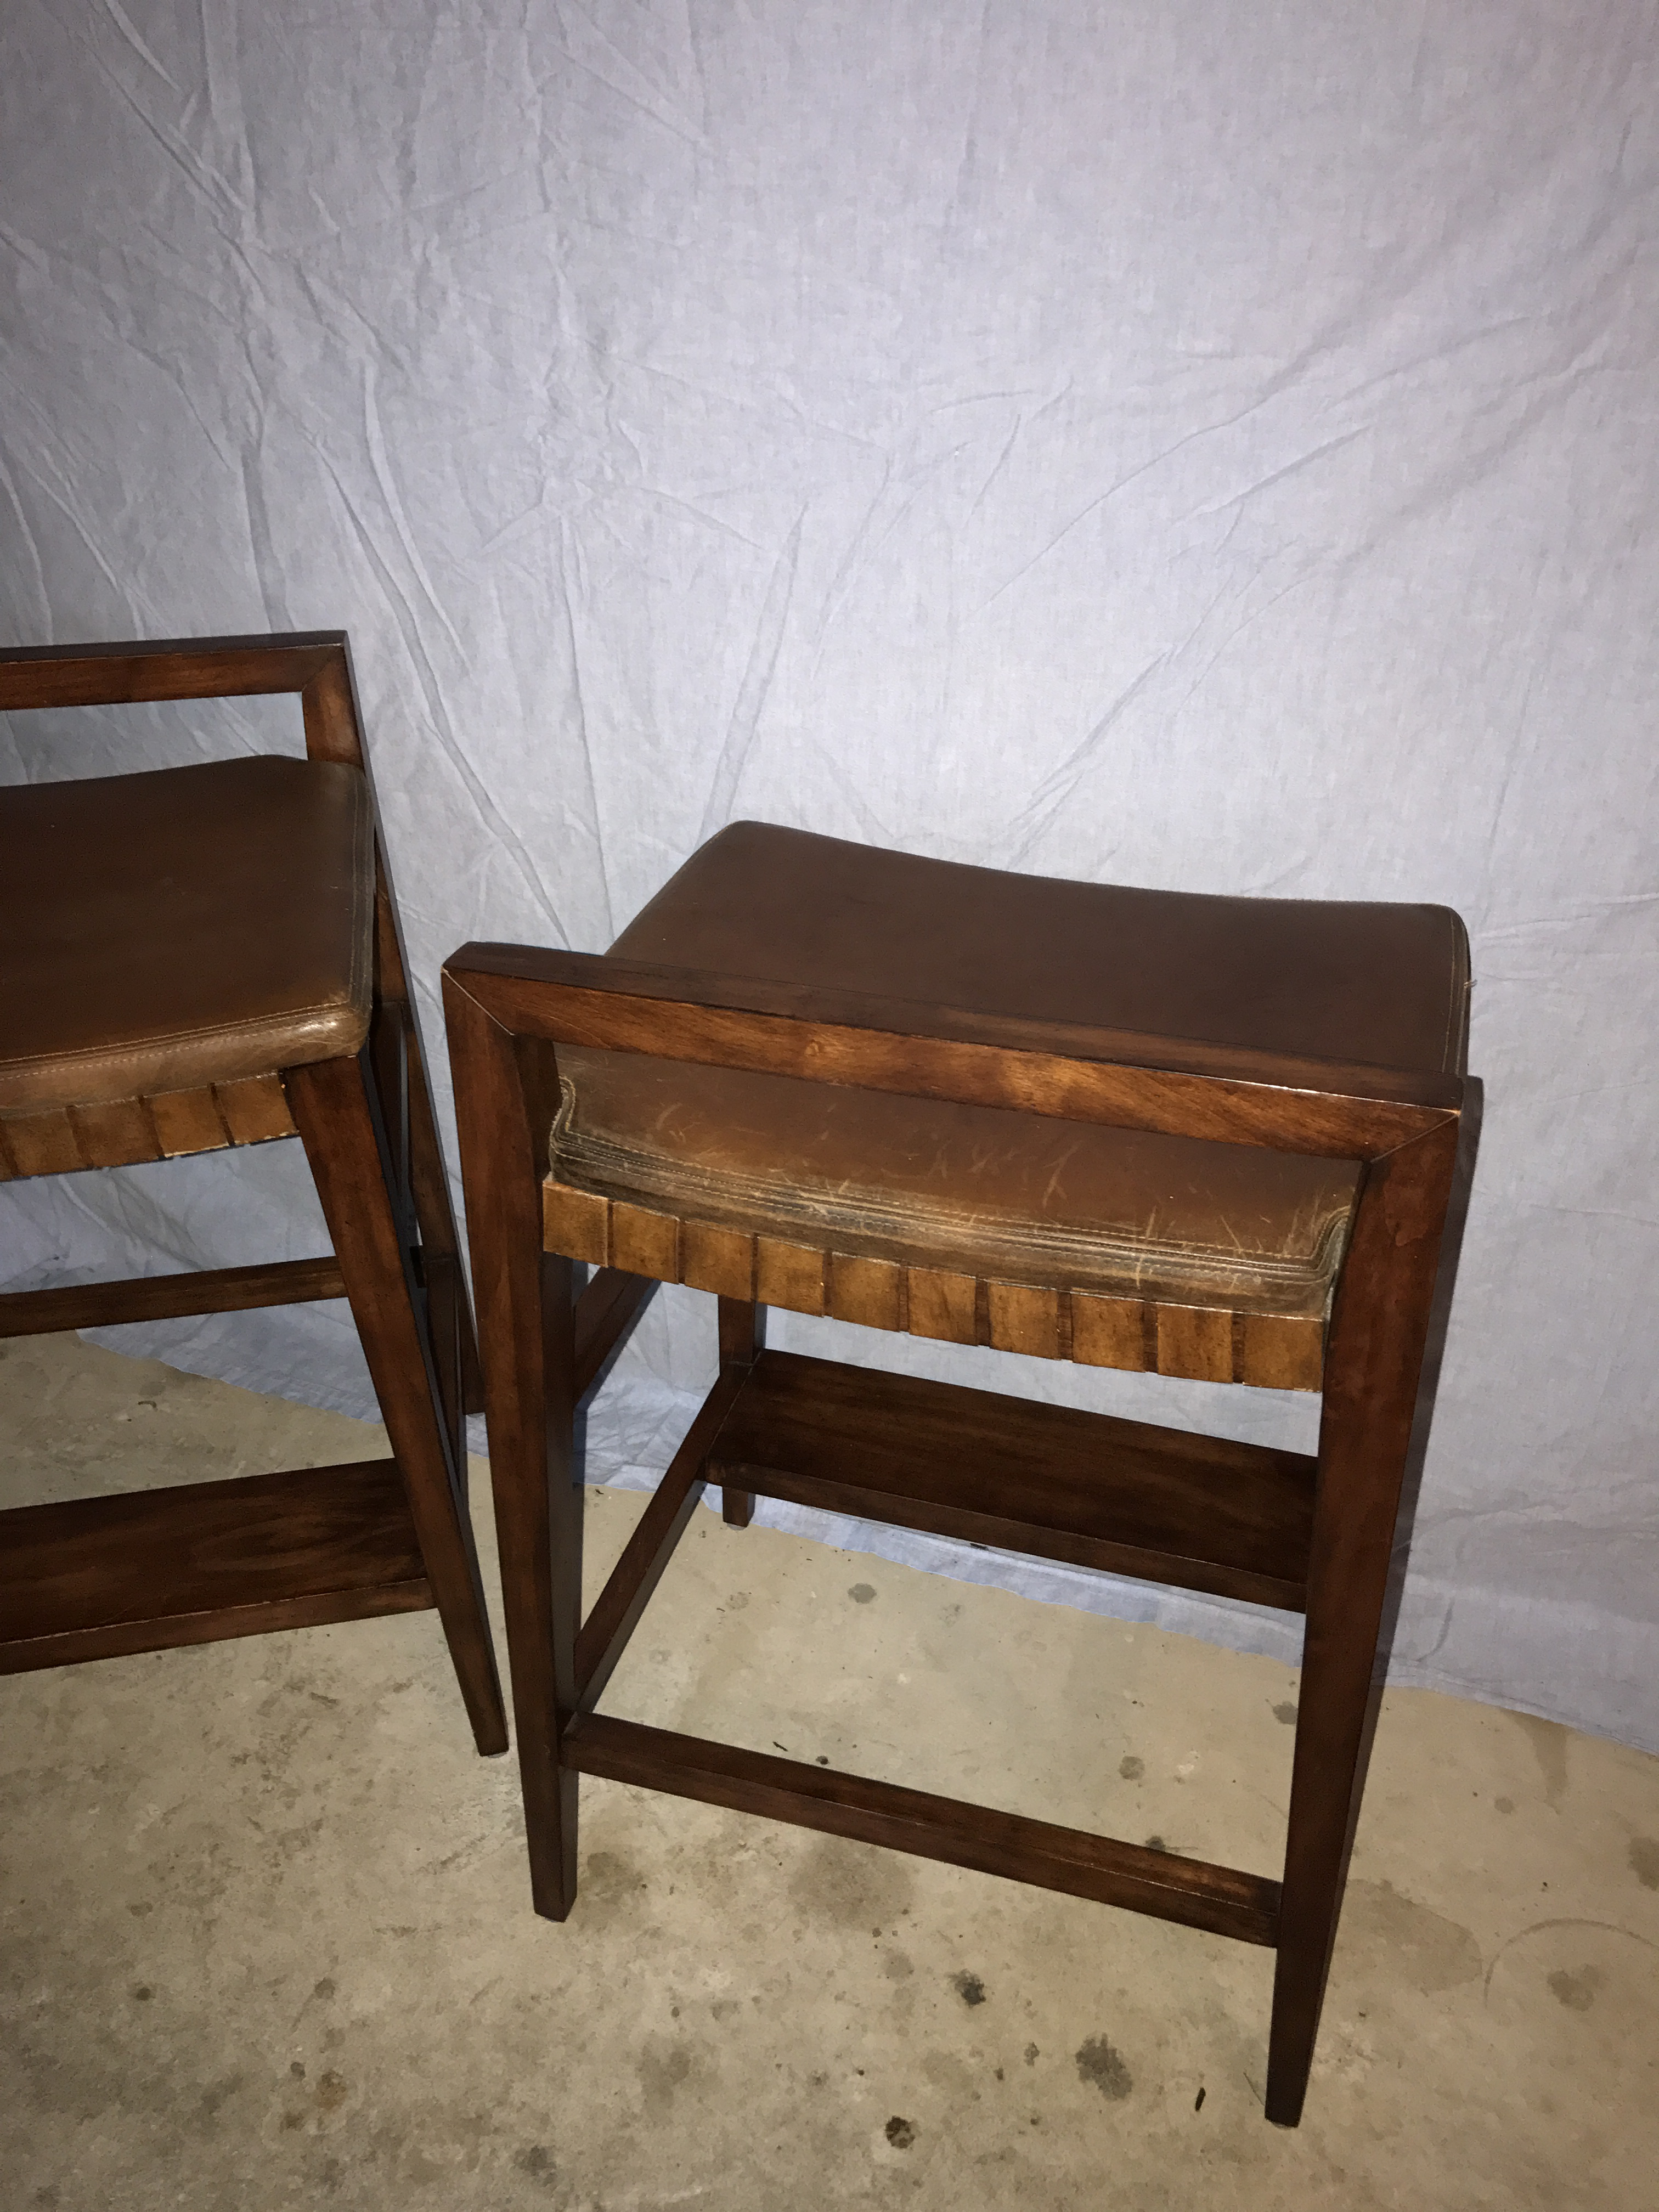 Henredon Mission Cherry Wood and Leather Bar Stools - A Pair - Image 5 of 11  sc 1 st  Chairish & Henredon Mission Cherry Wood and Leather Bar Stools - A Pair ... islam-shia.org